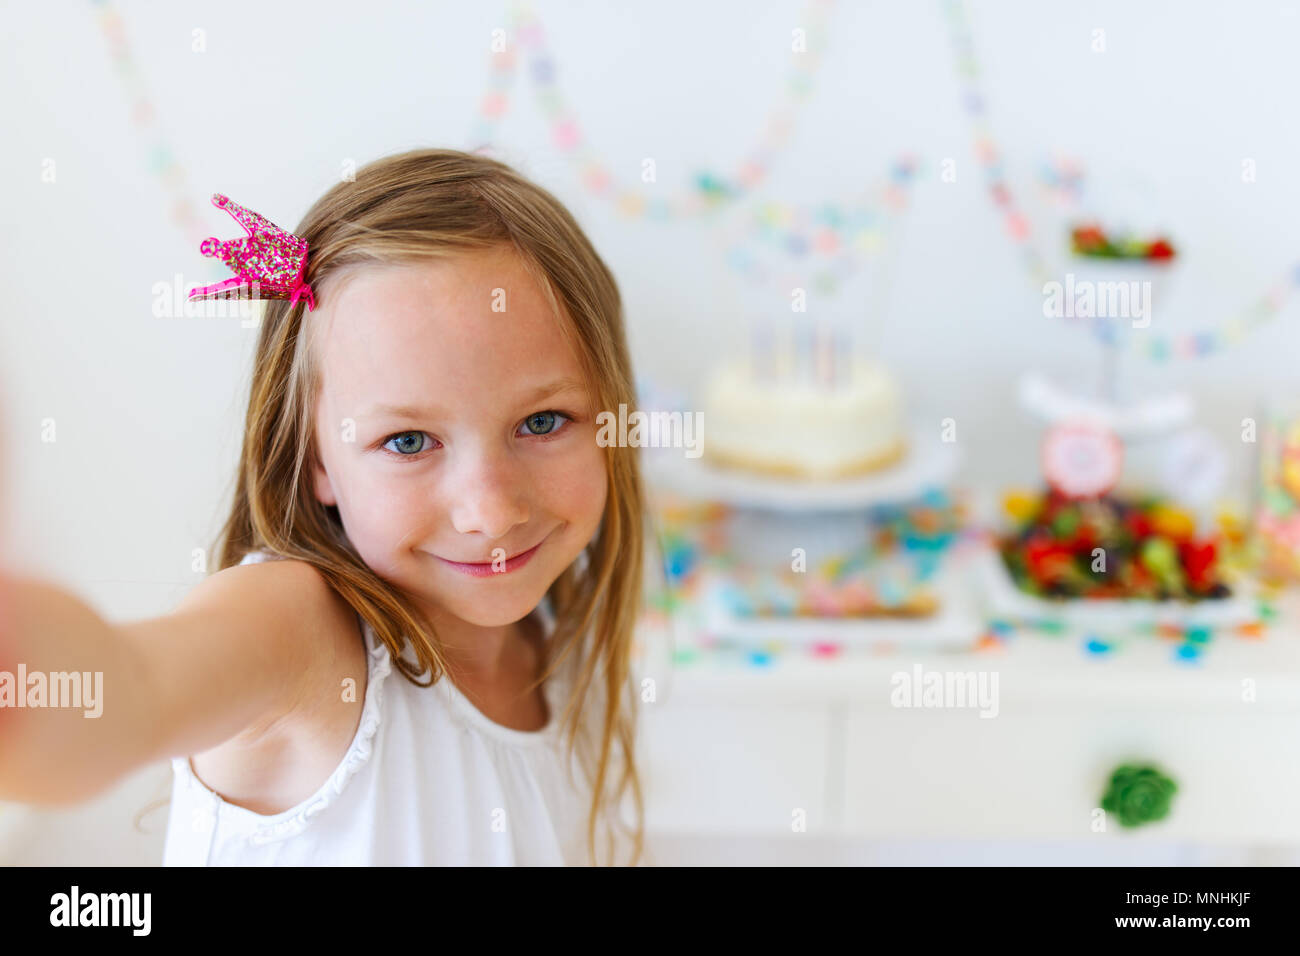 Adorable petite fille princesse avec couronne à kids Birthday party prendre selfies Banque D'Images